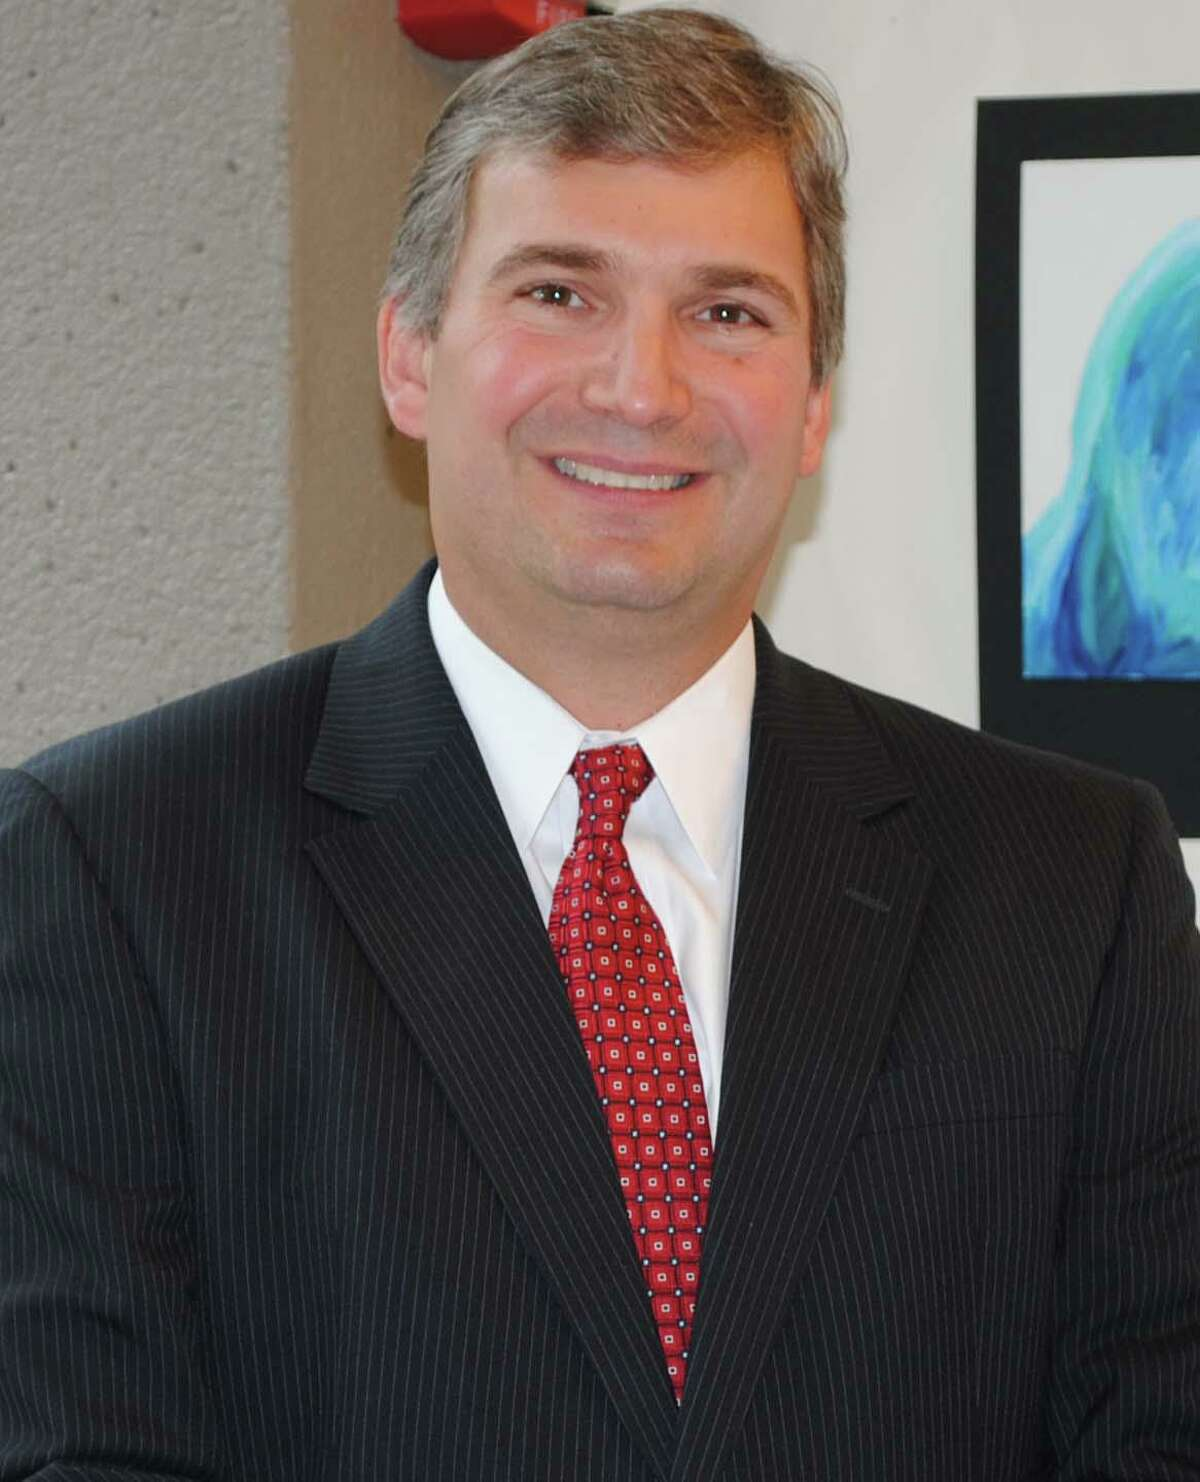 The Board of Education unanimously approved Tuesday, April 29, 2014, the appointment of New Canaan High School Principal Bryan Luizzi as an interim superintendent of schools, effective July 1, 2014.